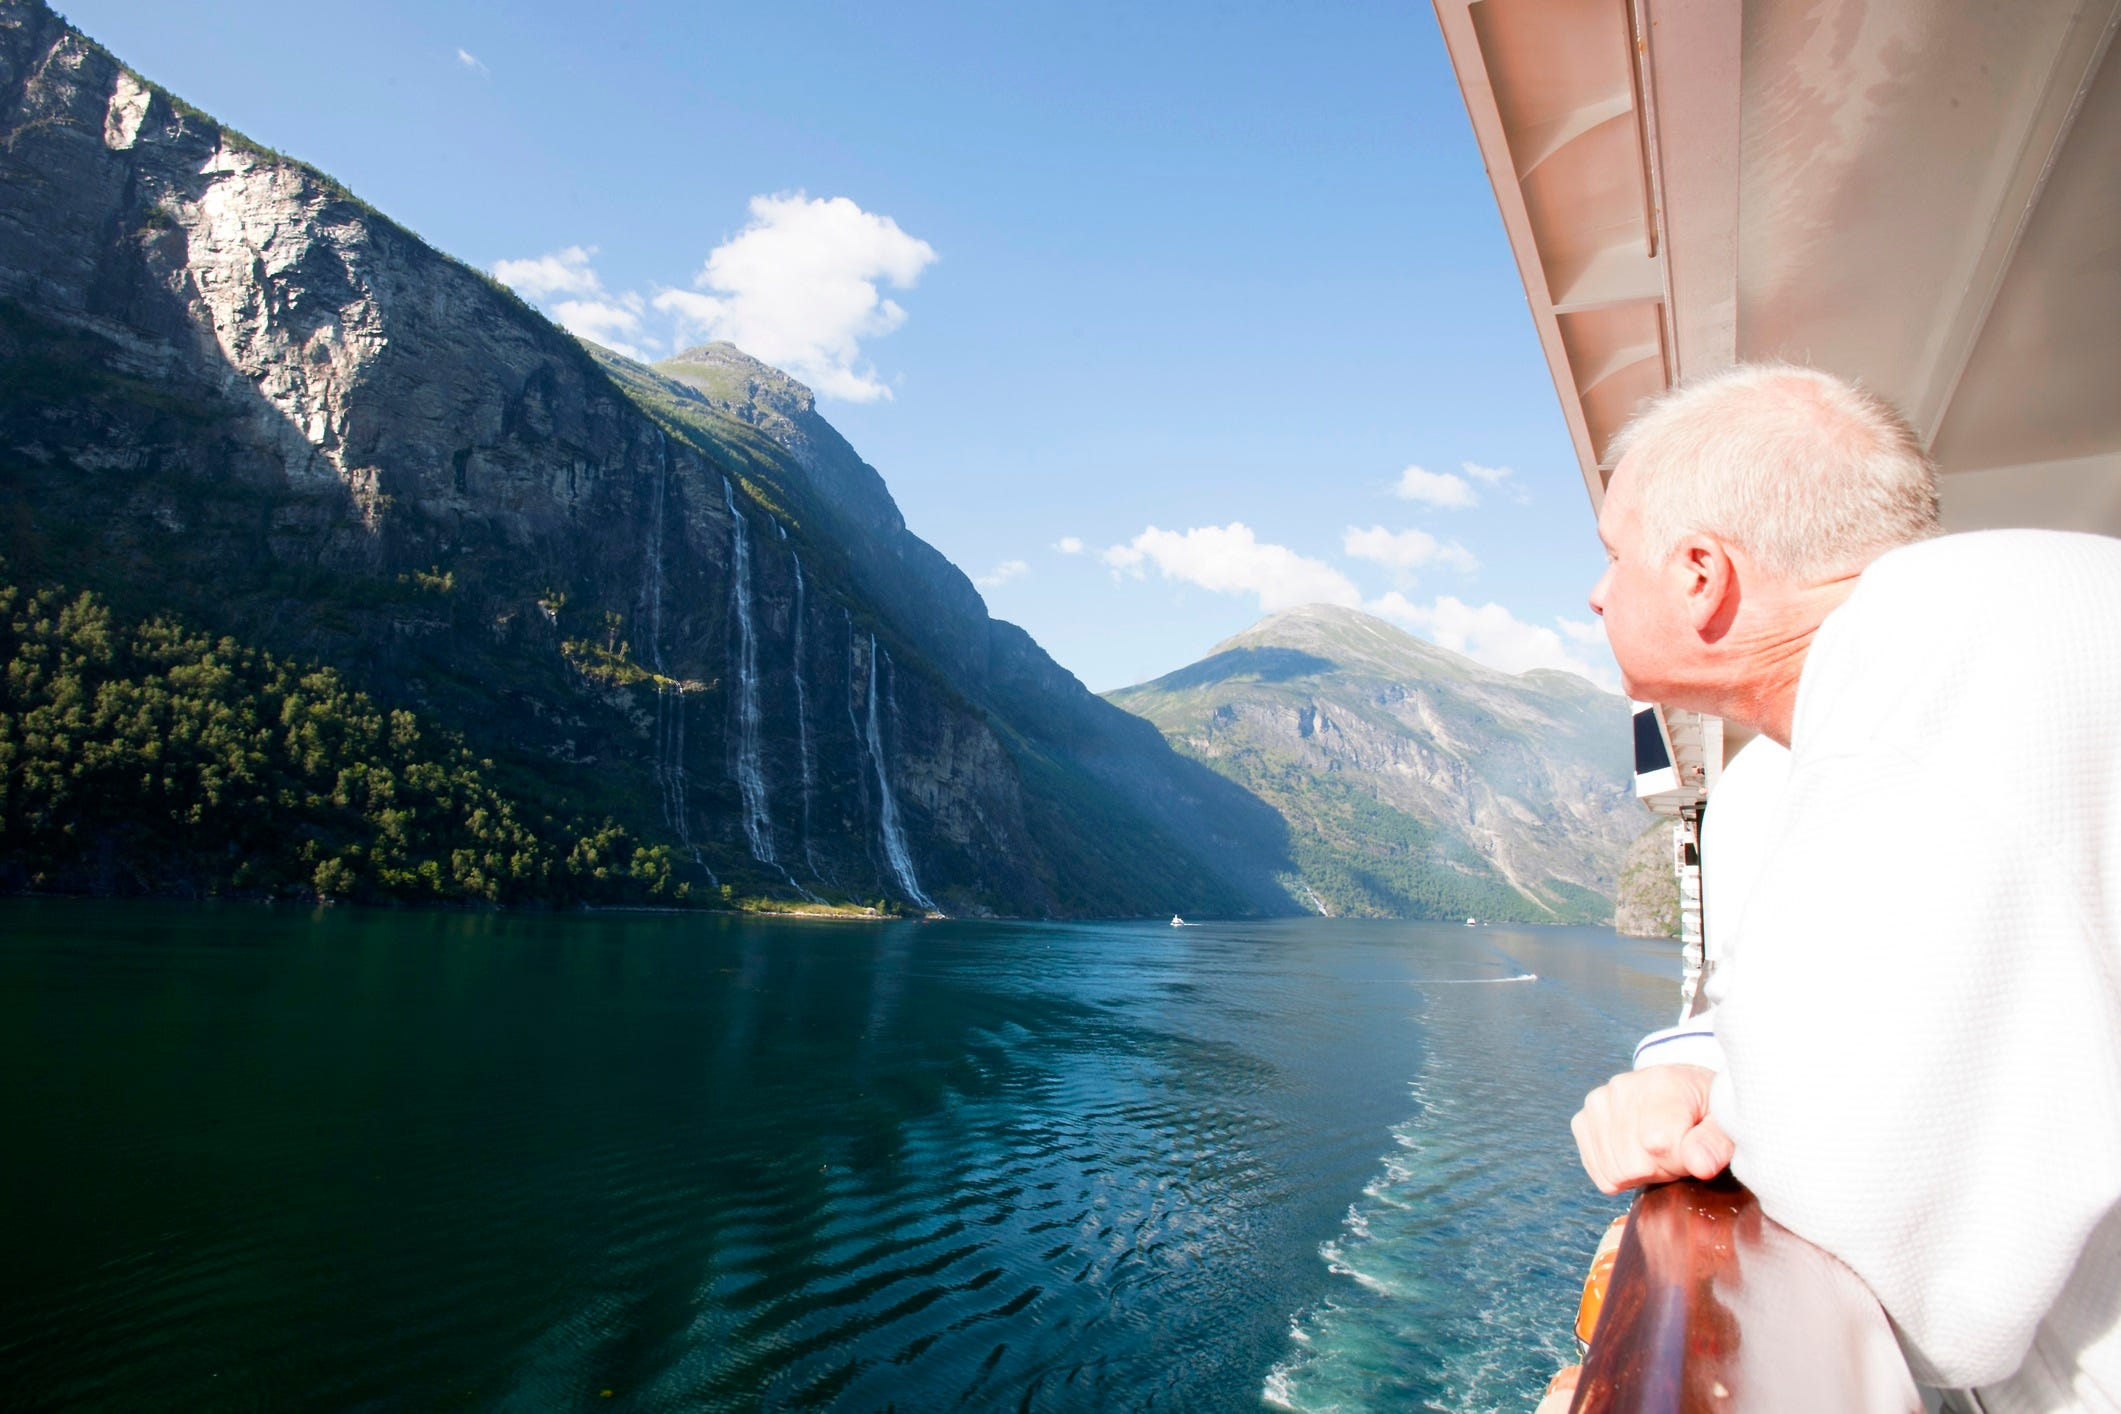 Secrets luxury cruise lines don't tell you: Order anything you want from anywhere you want